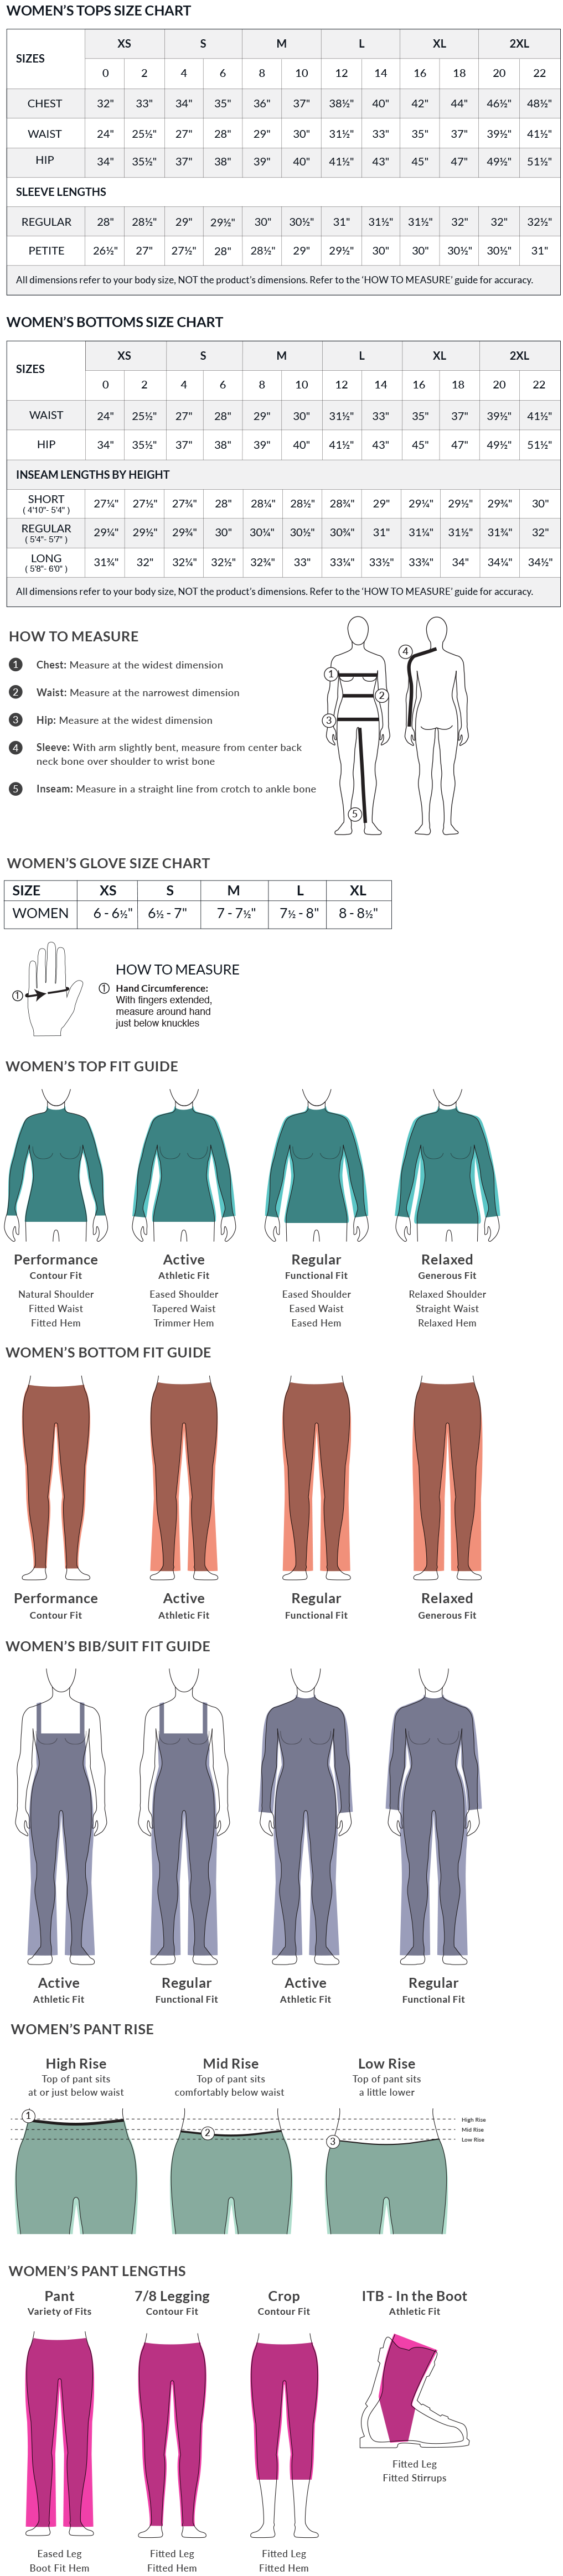 Obermeyer Women's Size Chart and Fit Guide